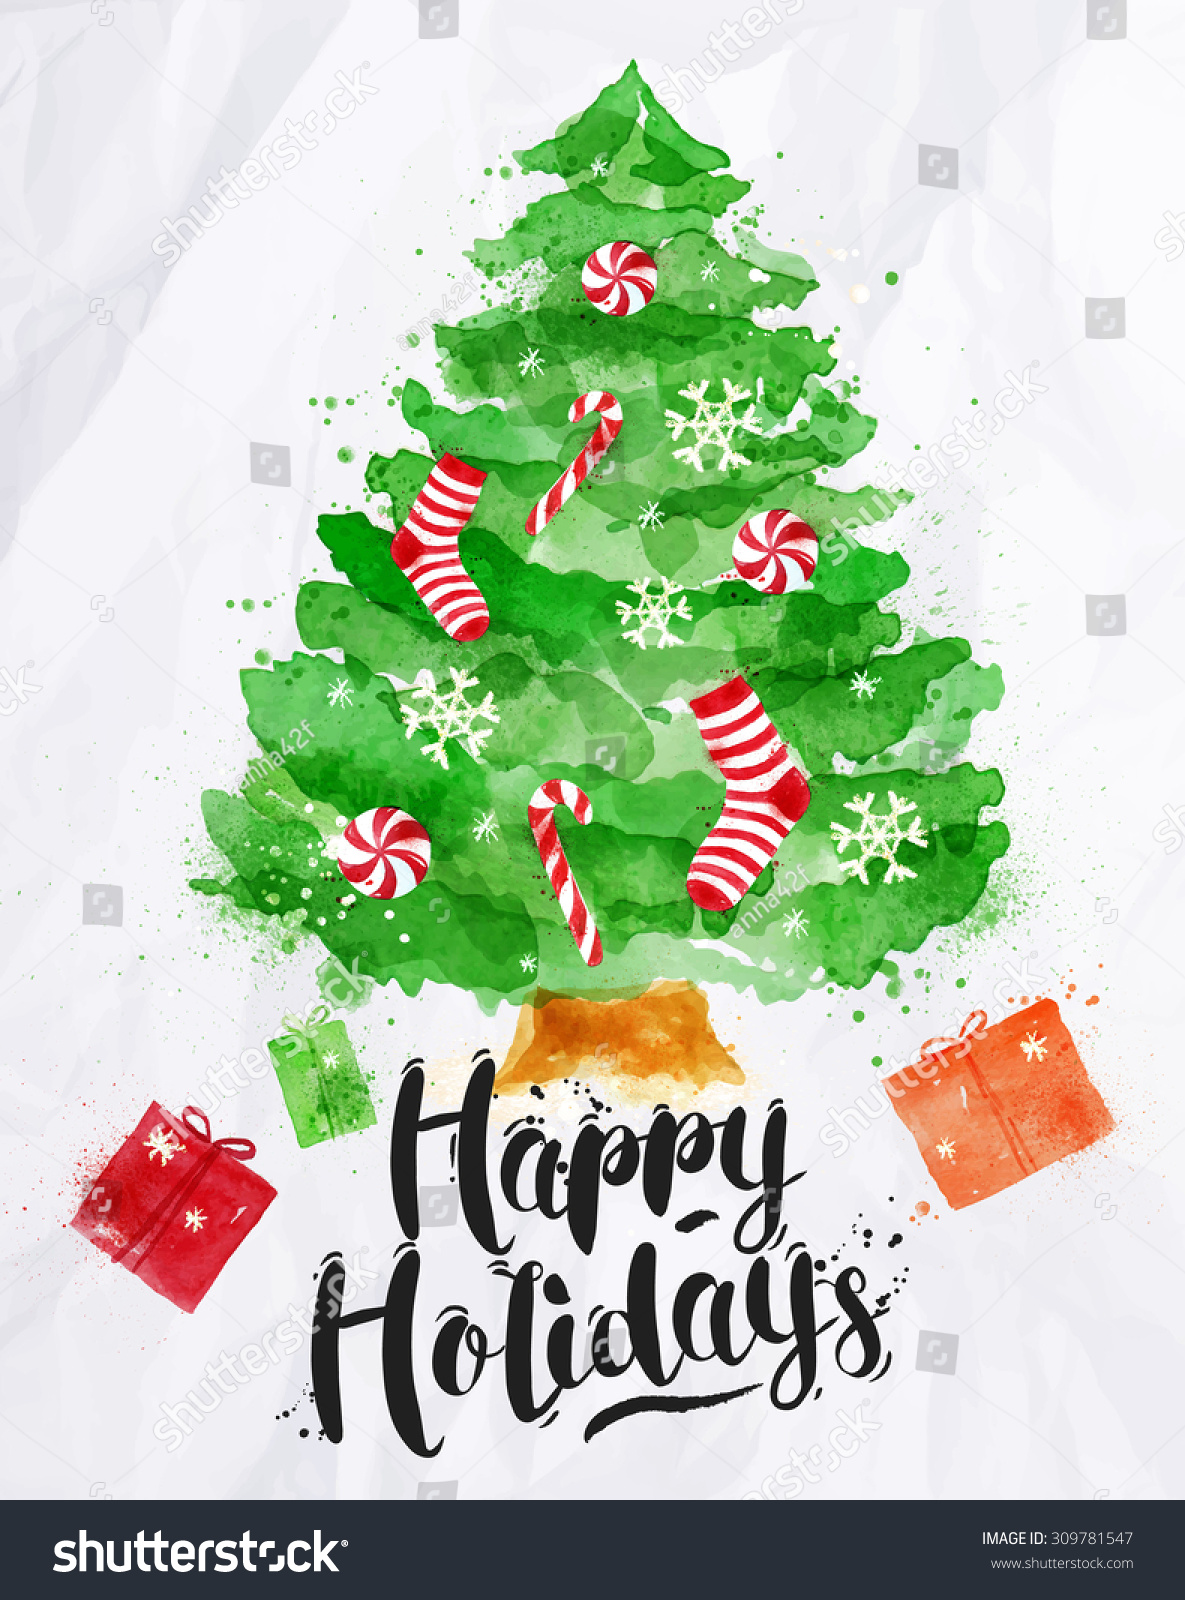 Watercolor Poster Decorated Christmas Tree Lettering Stock ...